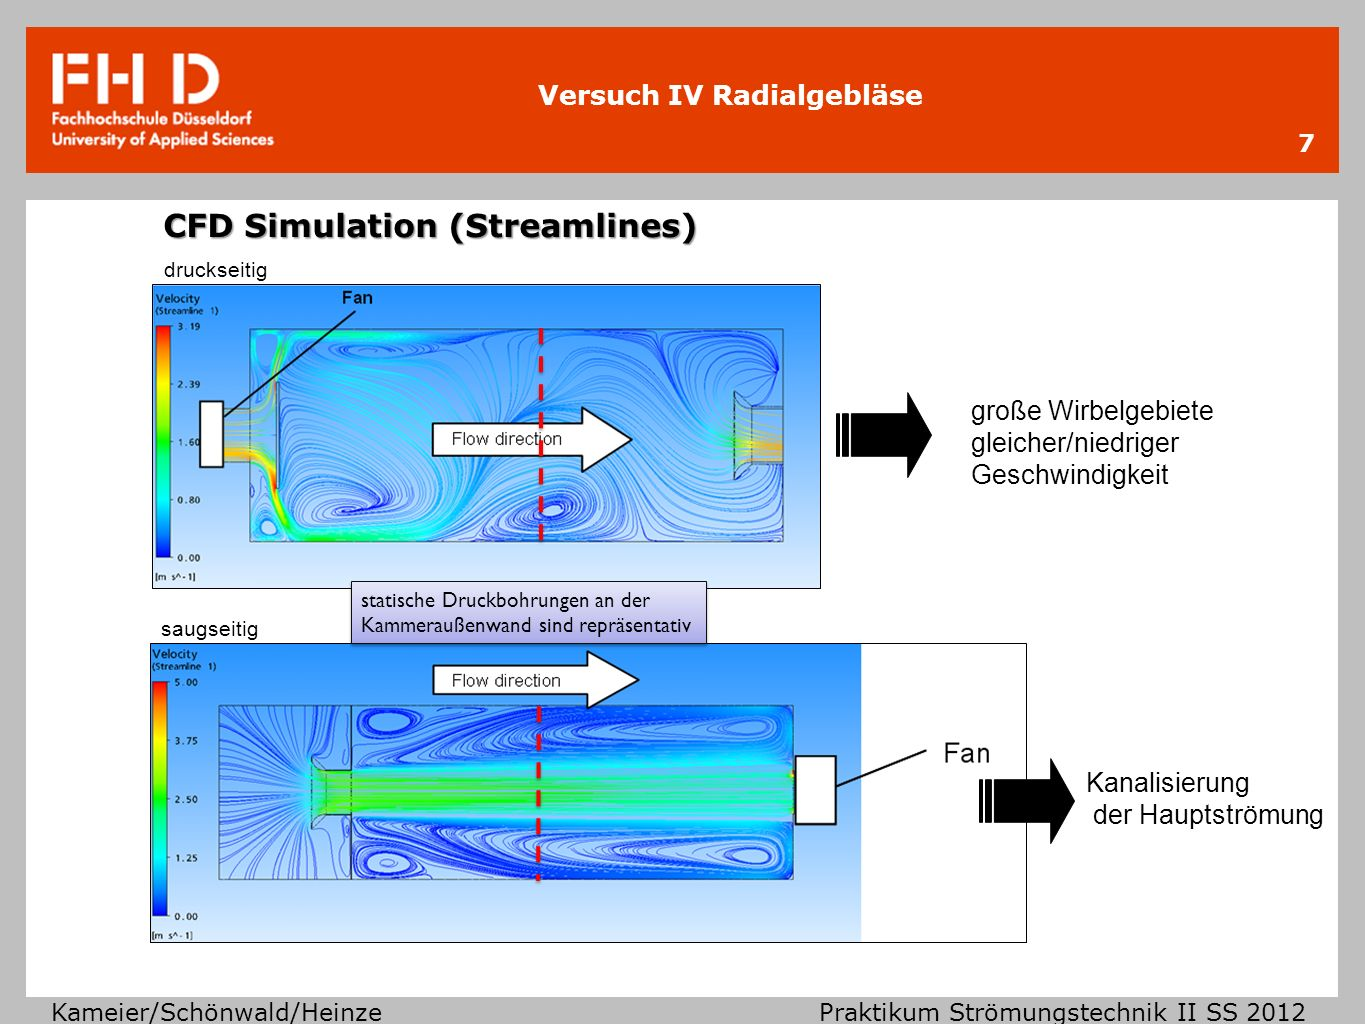 CFD Simulation (Streamlines)